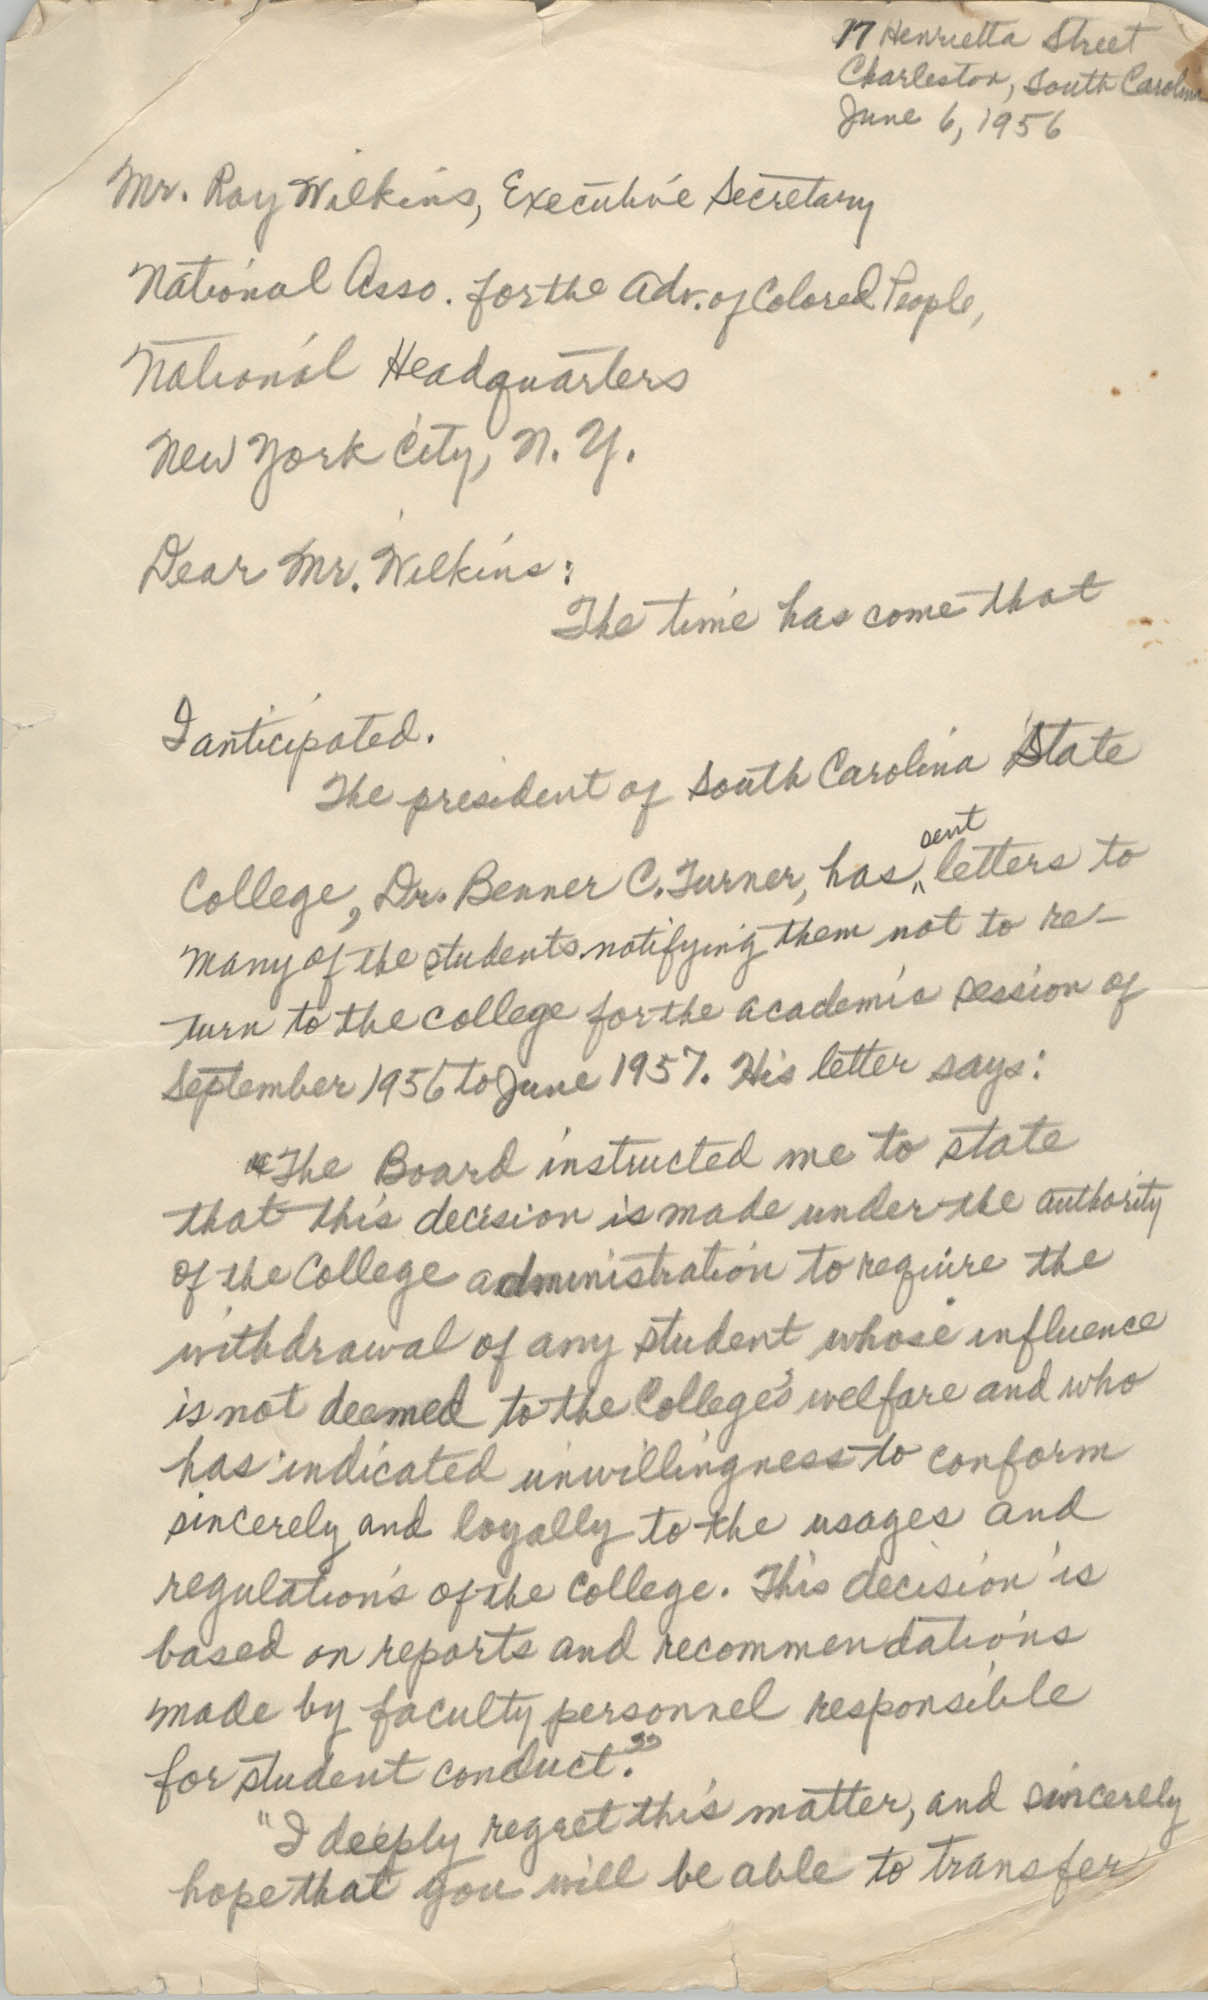 Letter from Septima P. Clark to Ray Wilkins, June 6, 1956